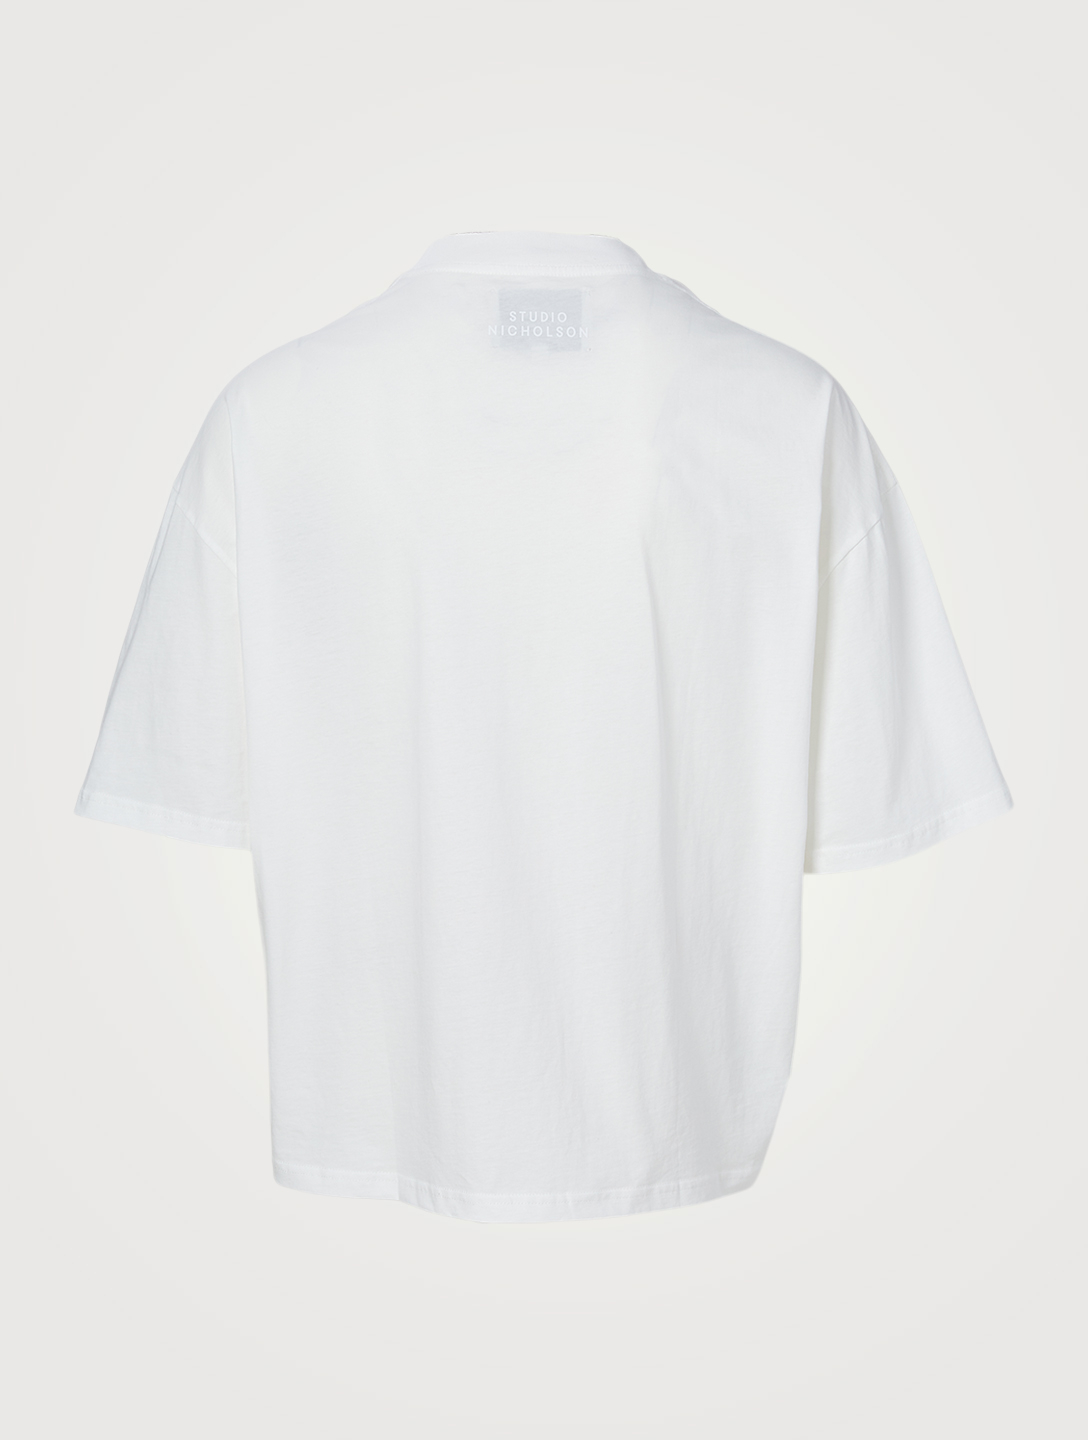 STUDIO NICHOLSON Piu Boxy-Fit T-Shirt With Tonal Logo Men's White